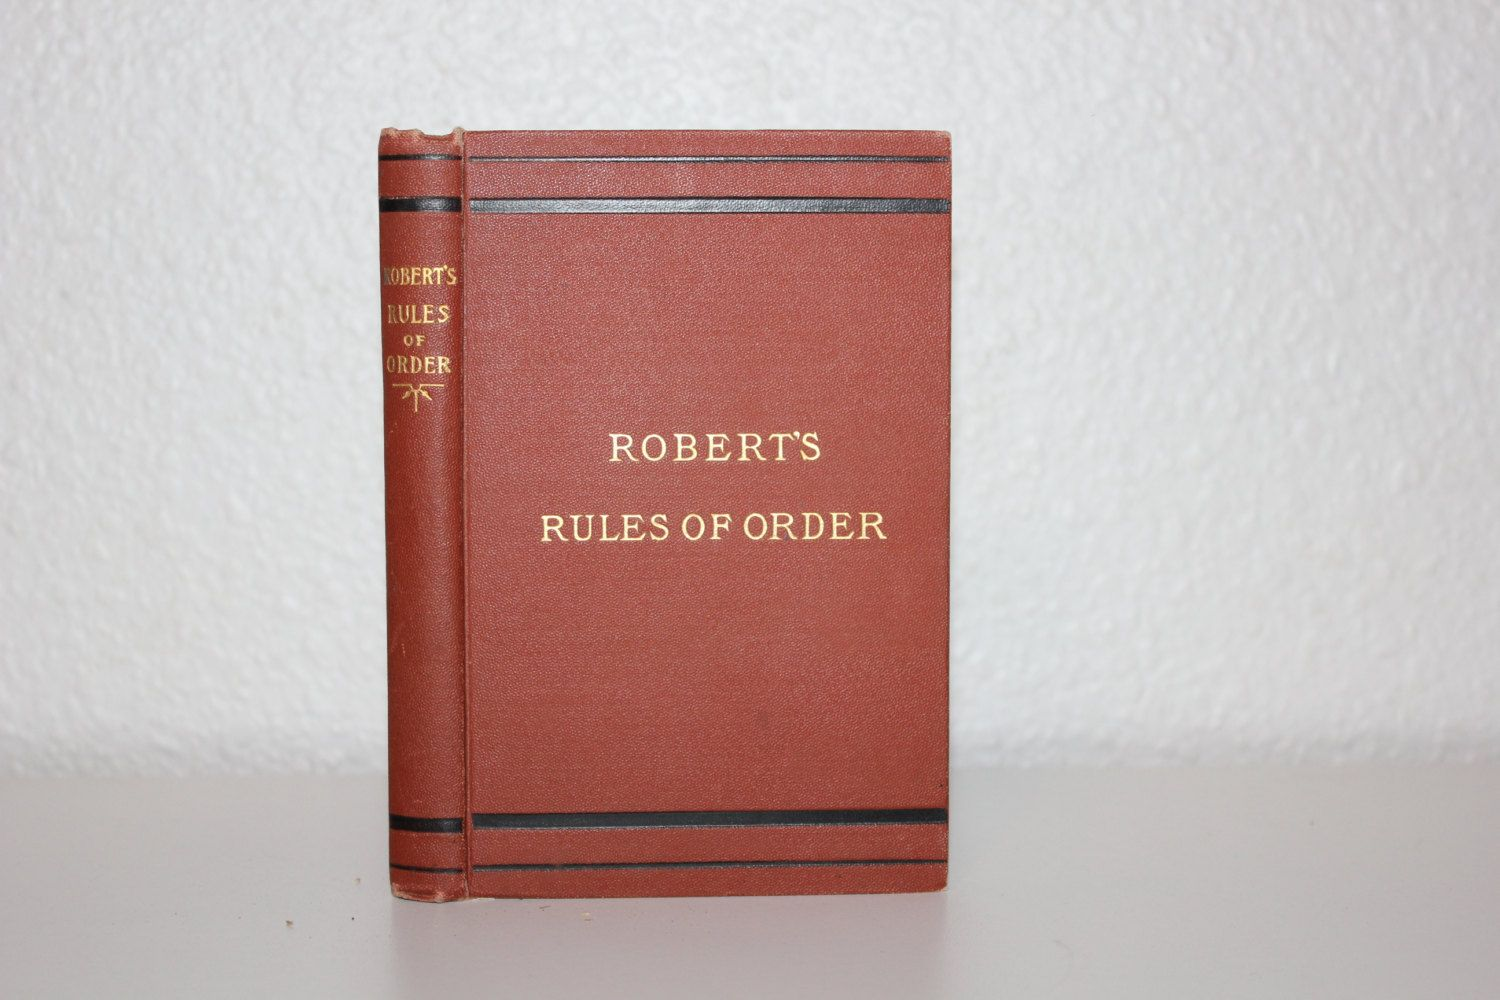 Robert 39 S Rules Of Order By General Henry M Robert 1906 Vintage Book Pocket Manual Red Book Red Black Gold Vintag Red Books Vintage Book Vintage Books